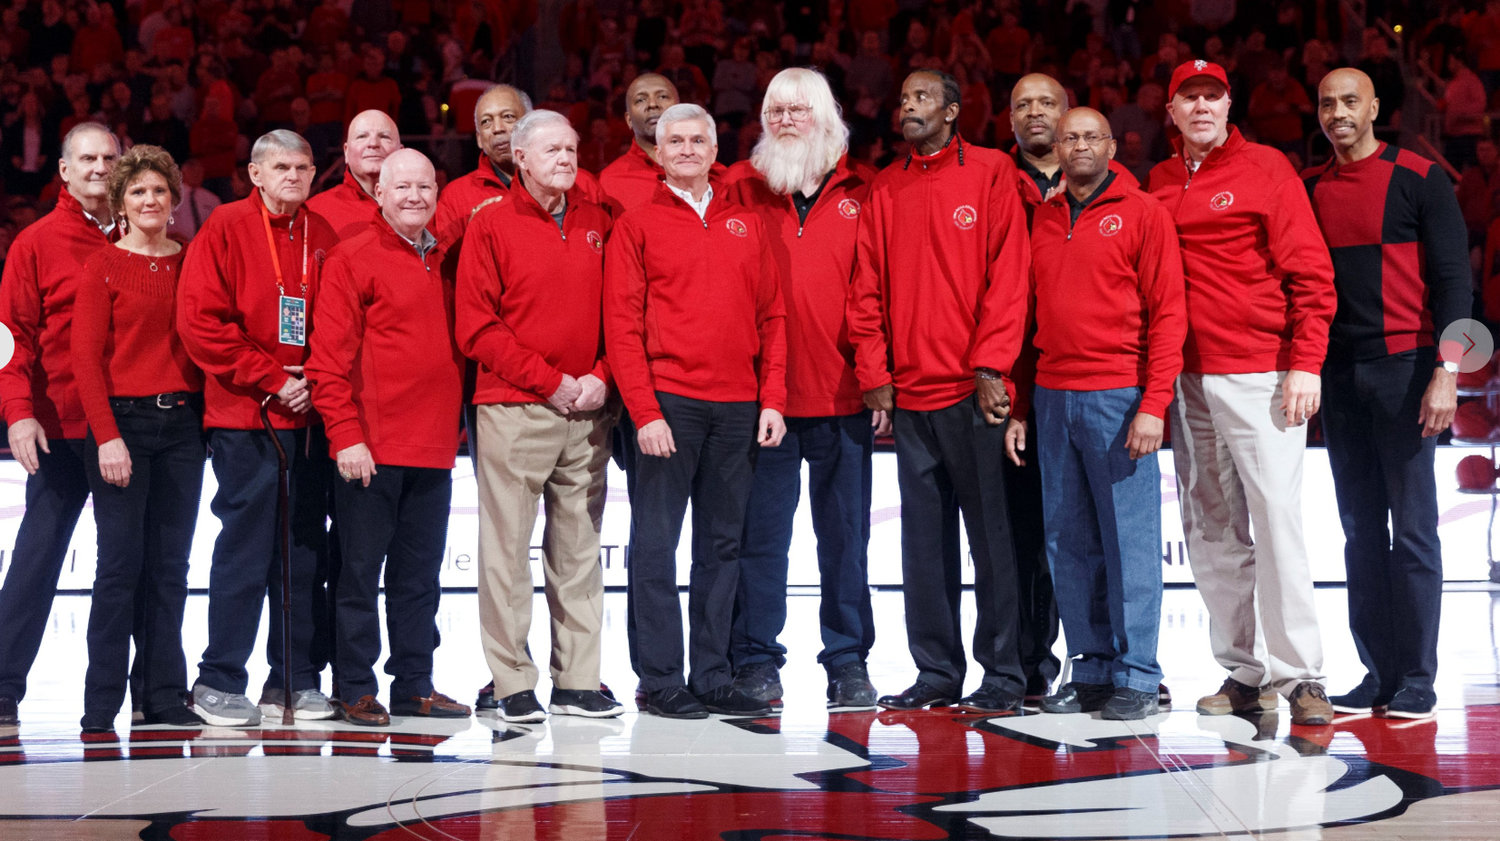 The 1980 Louisville basketball national champions were honored Saturday in the Yum! Center. A film about the season is coming out soon. (Louisville Athletics photo)